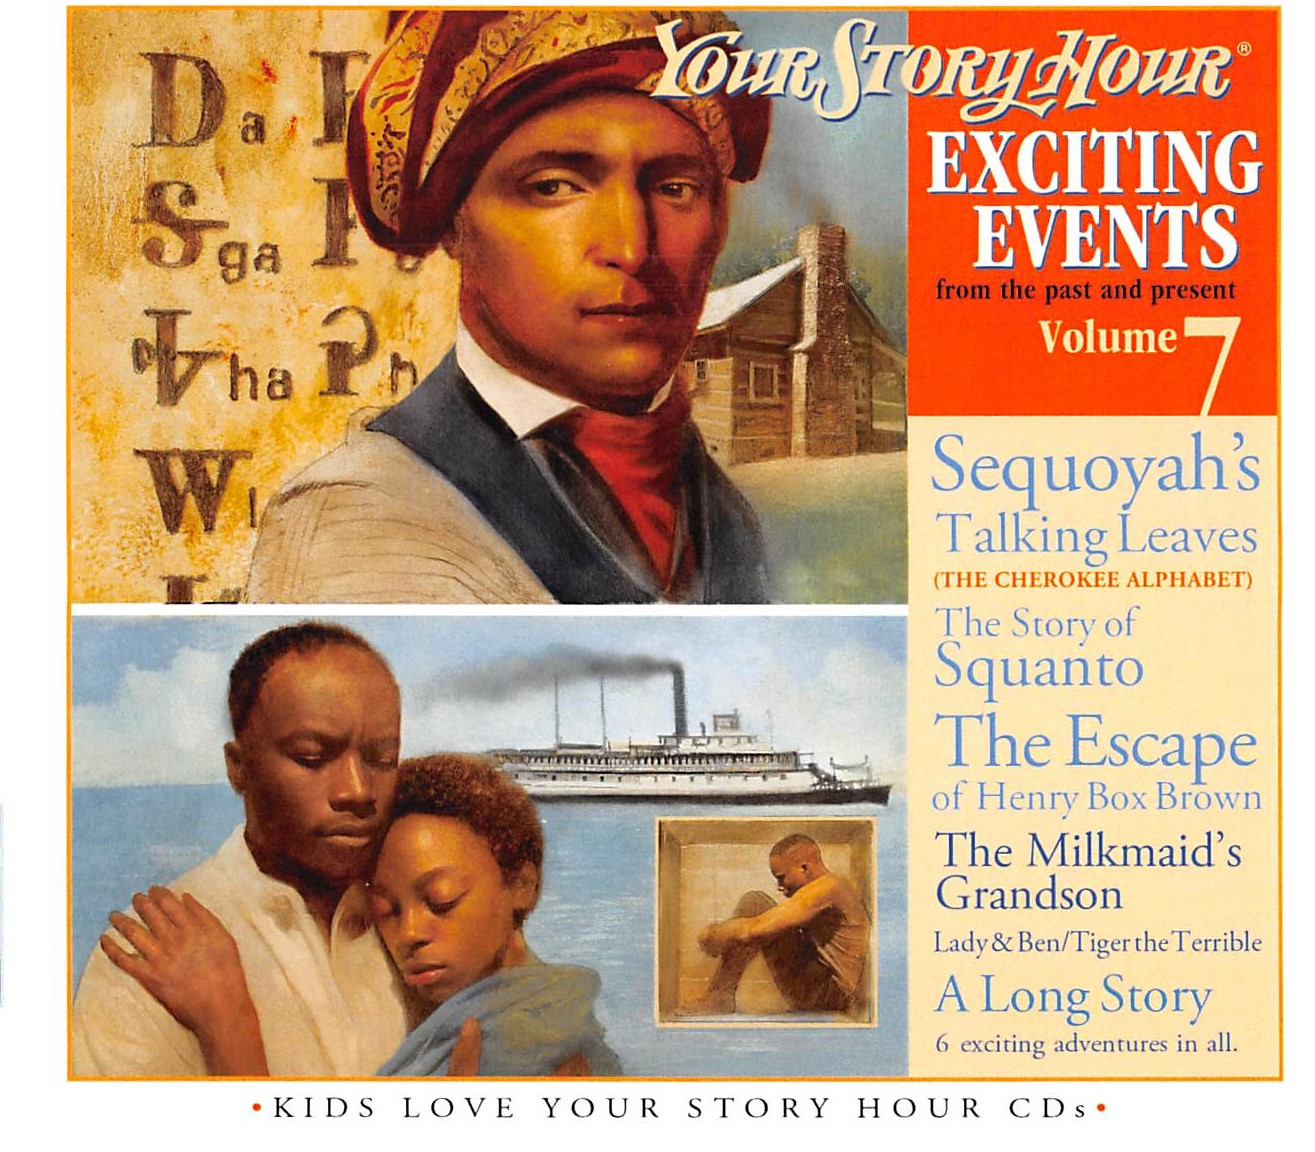 Your Story Hour Exciting Events - Volume 7